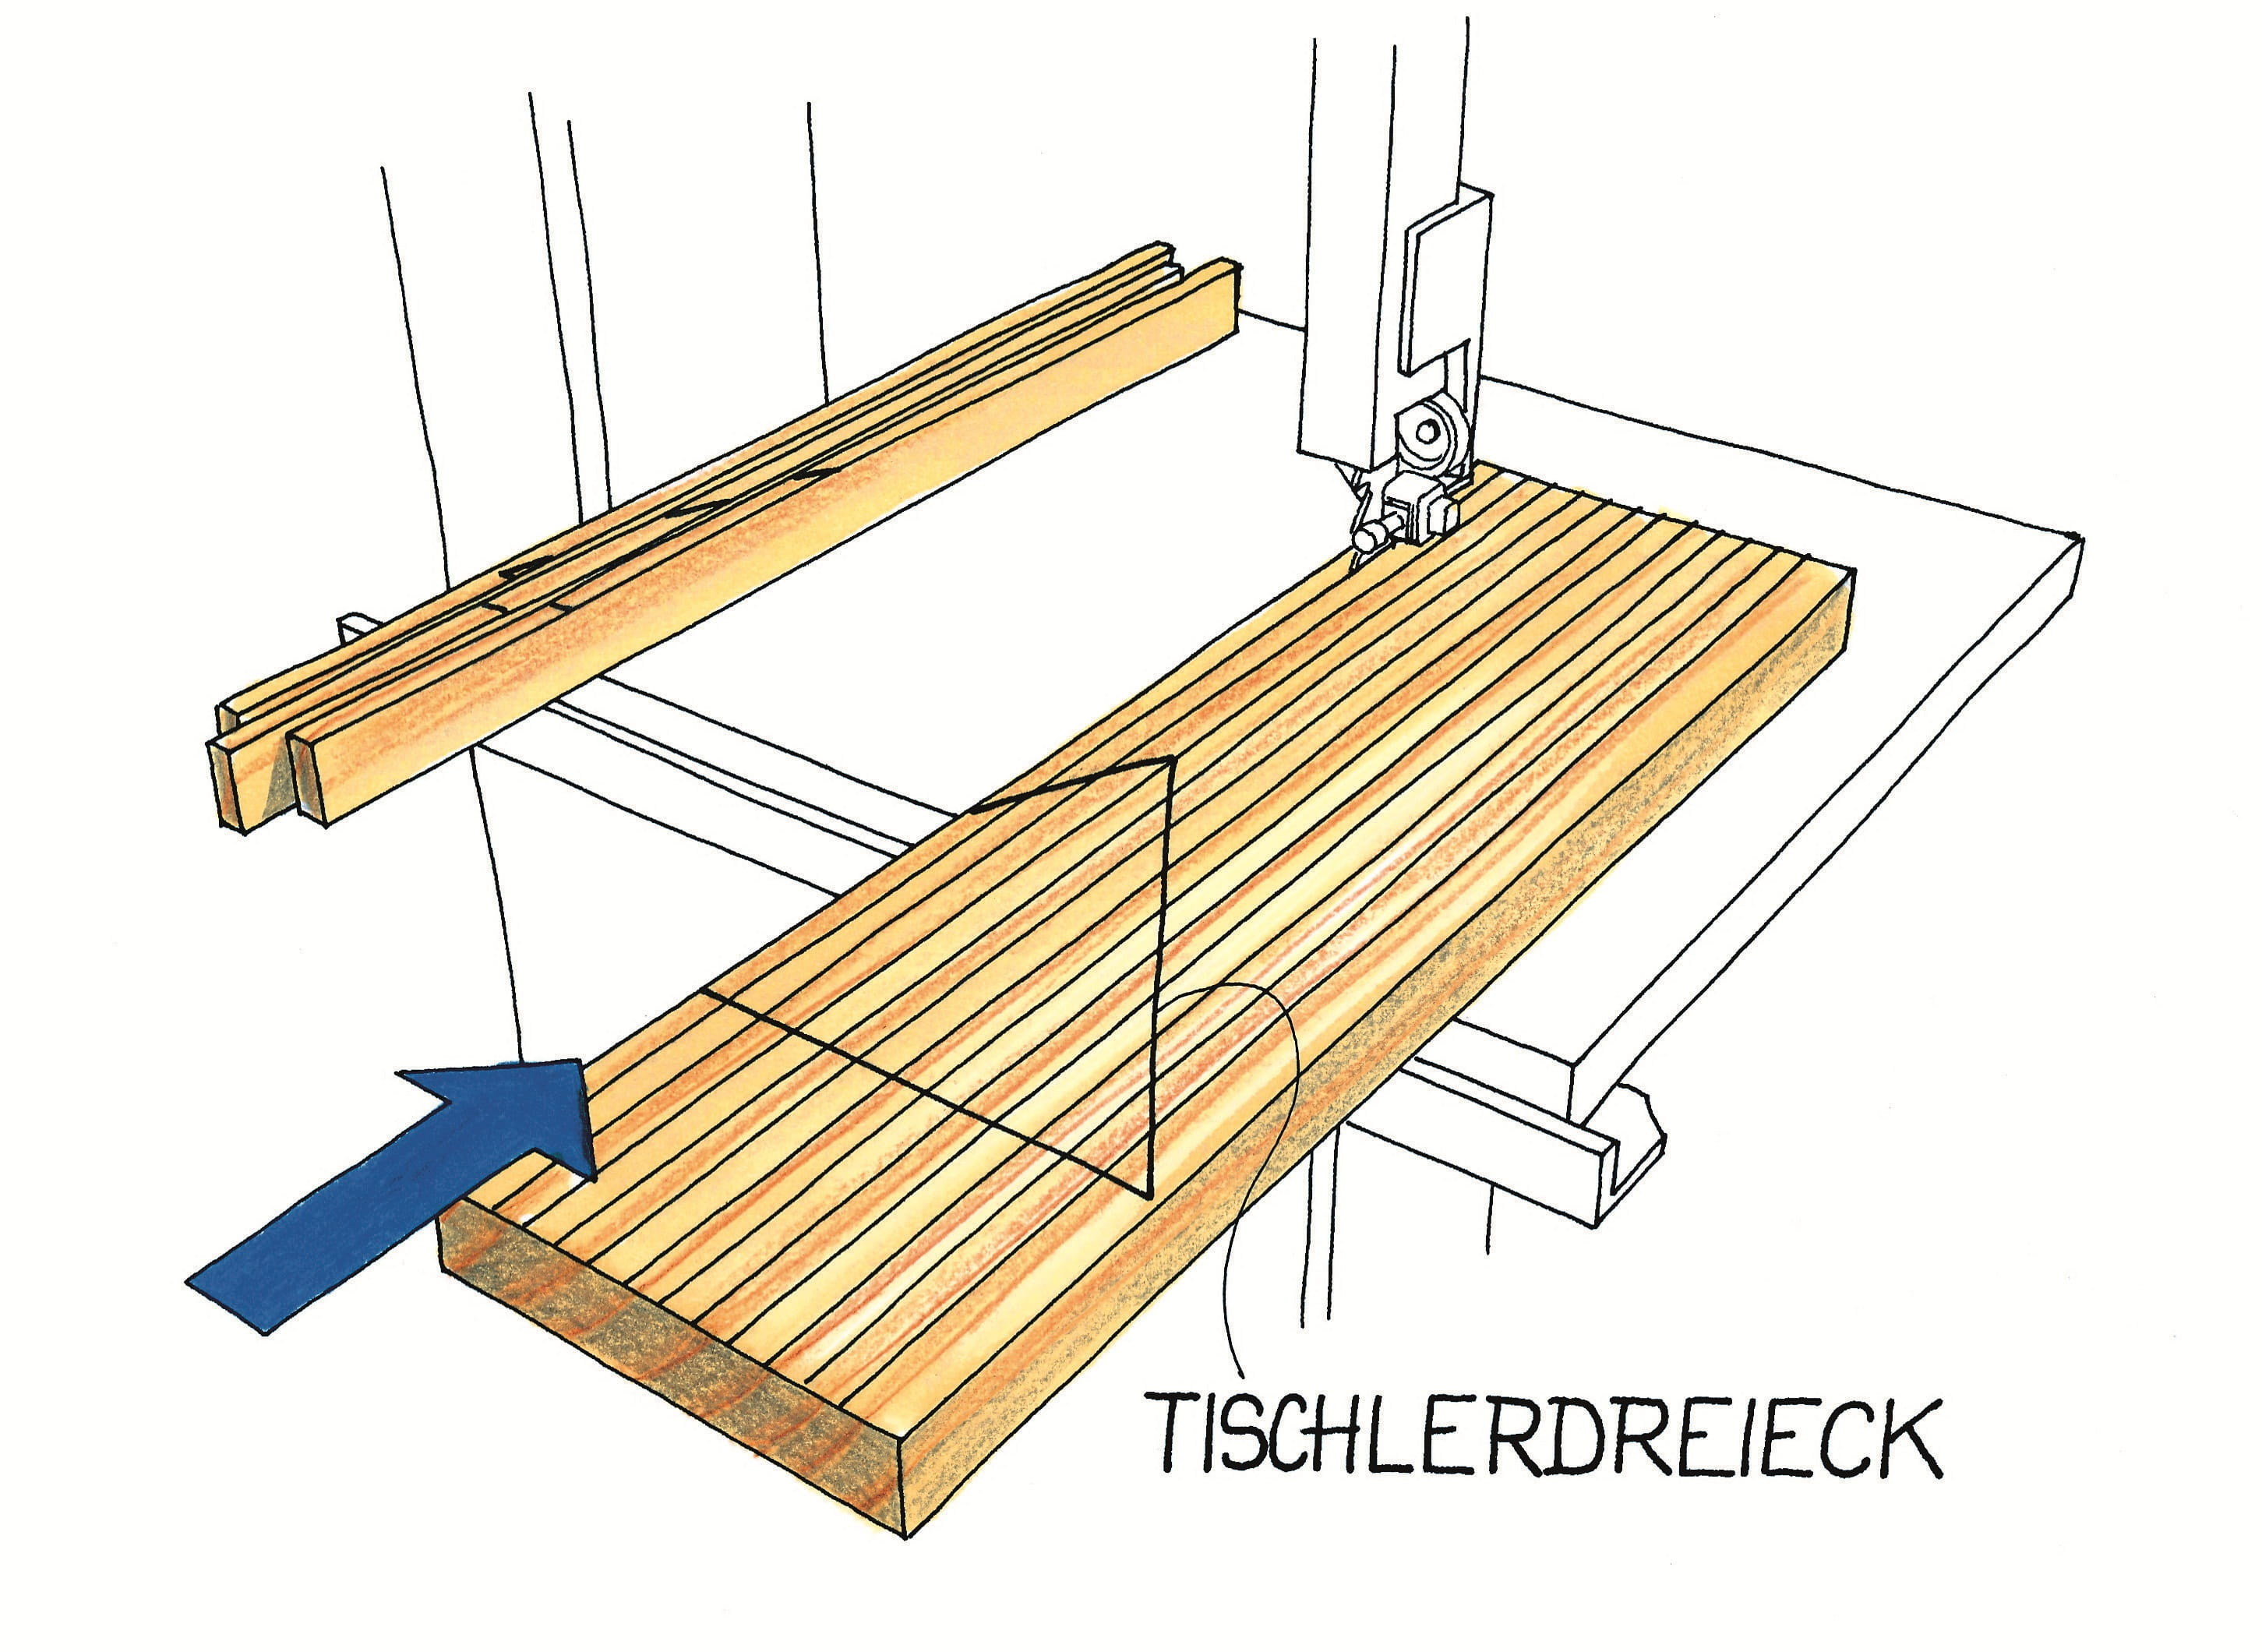 Bugholz mit natürlicher Optik. Illustration: Willi Brokbals